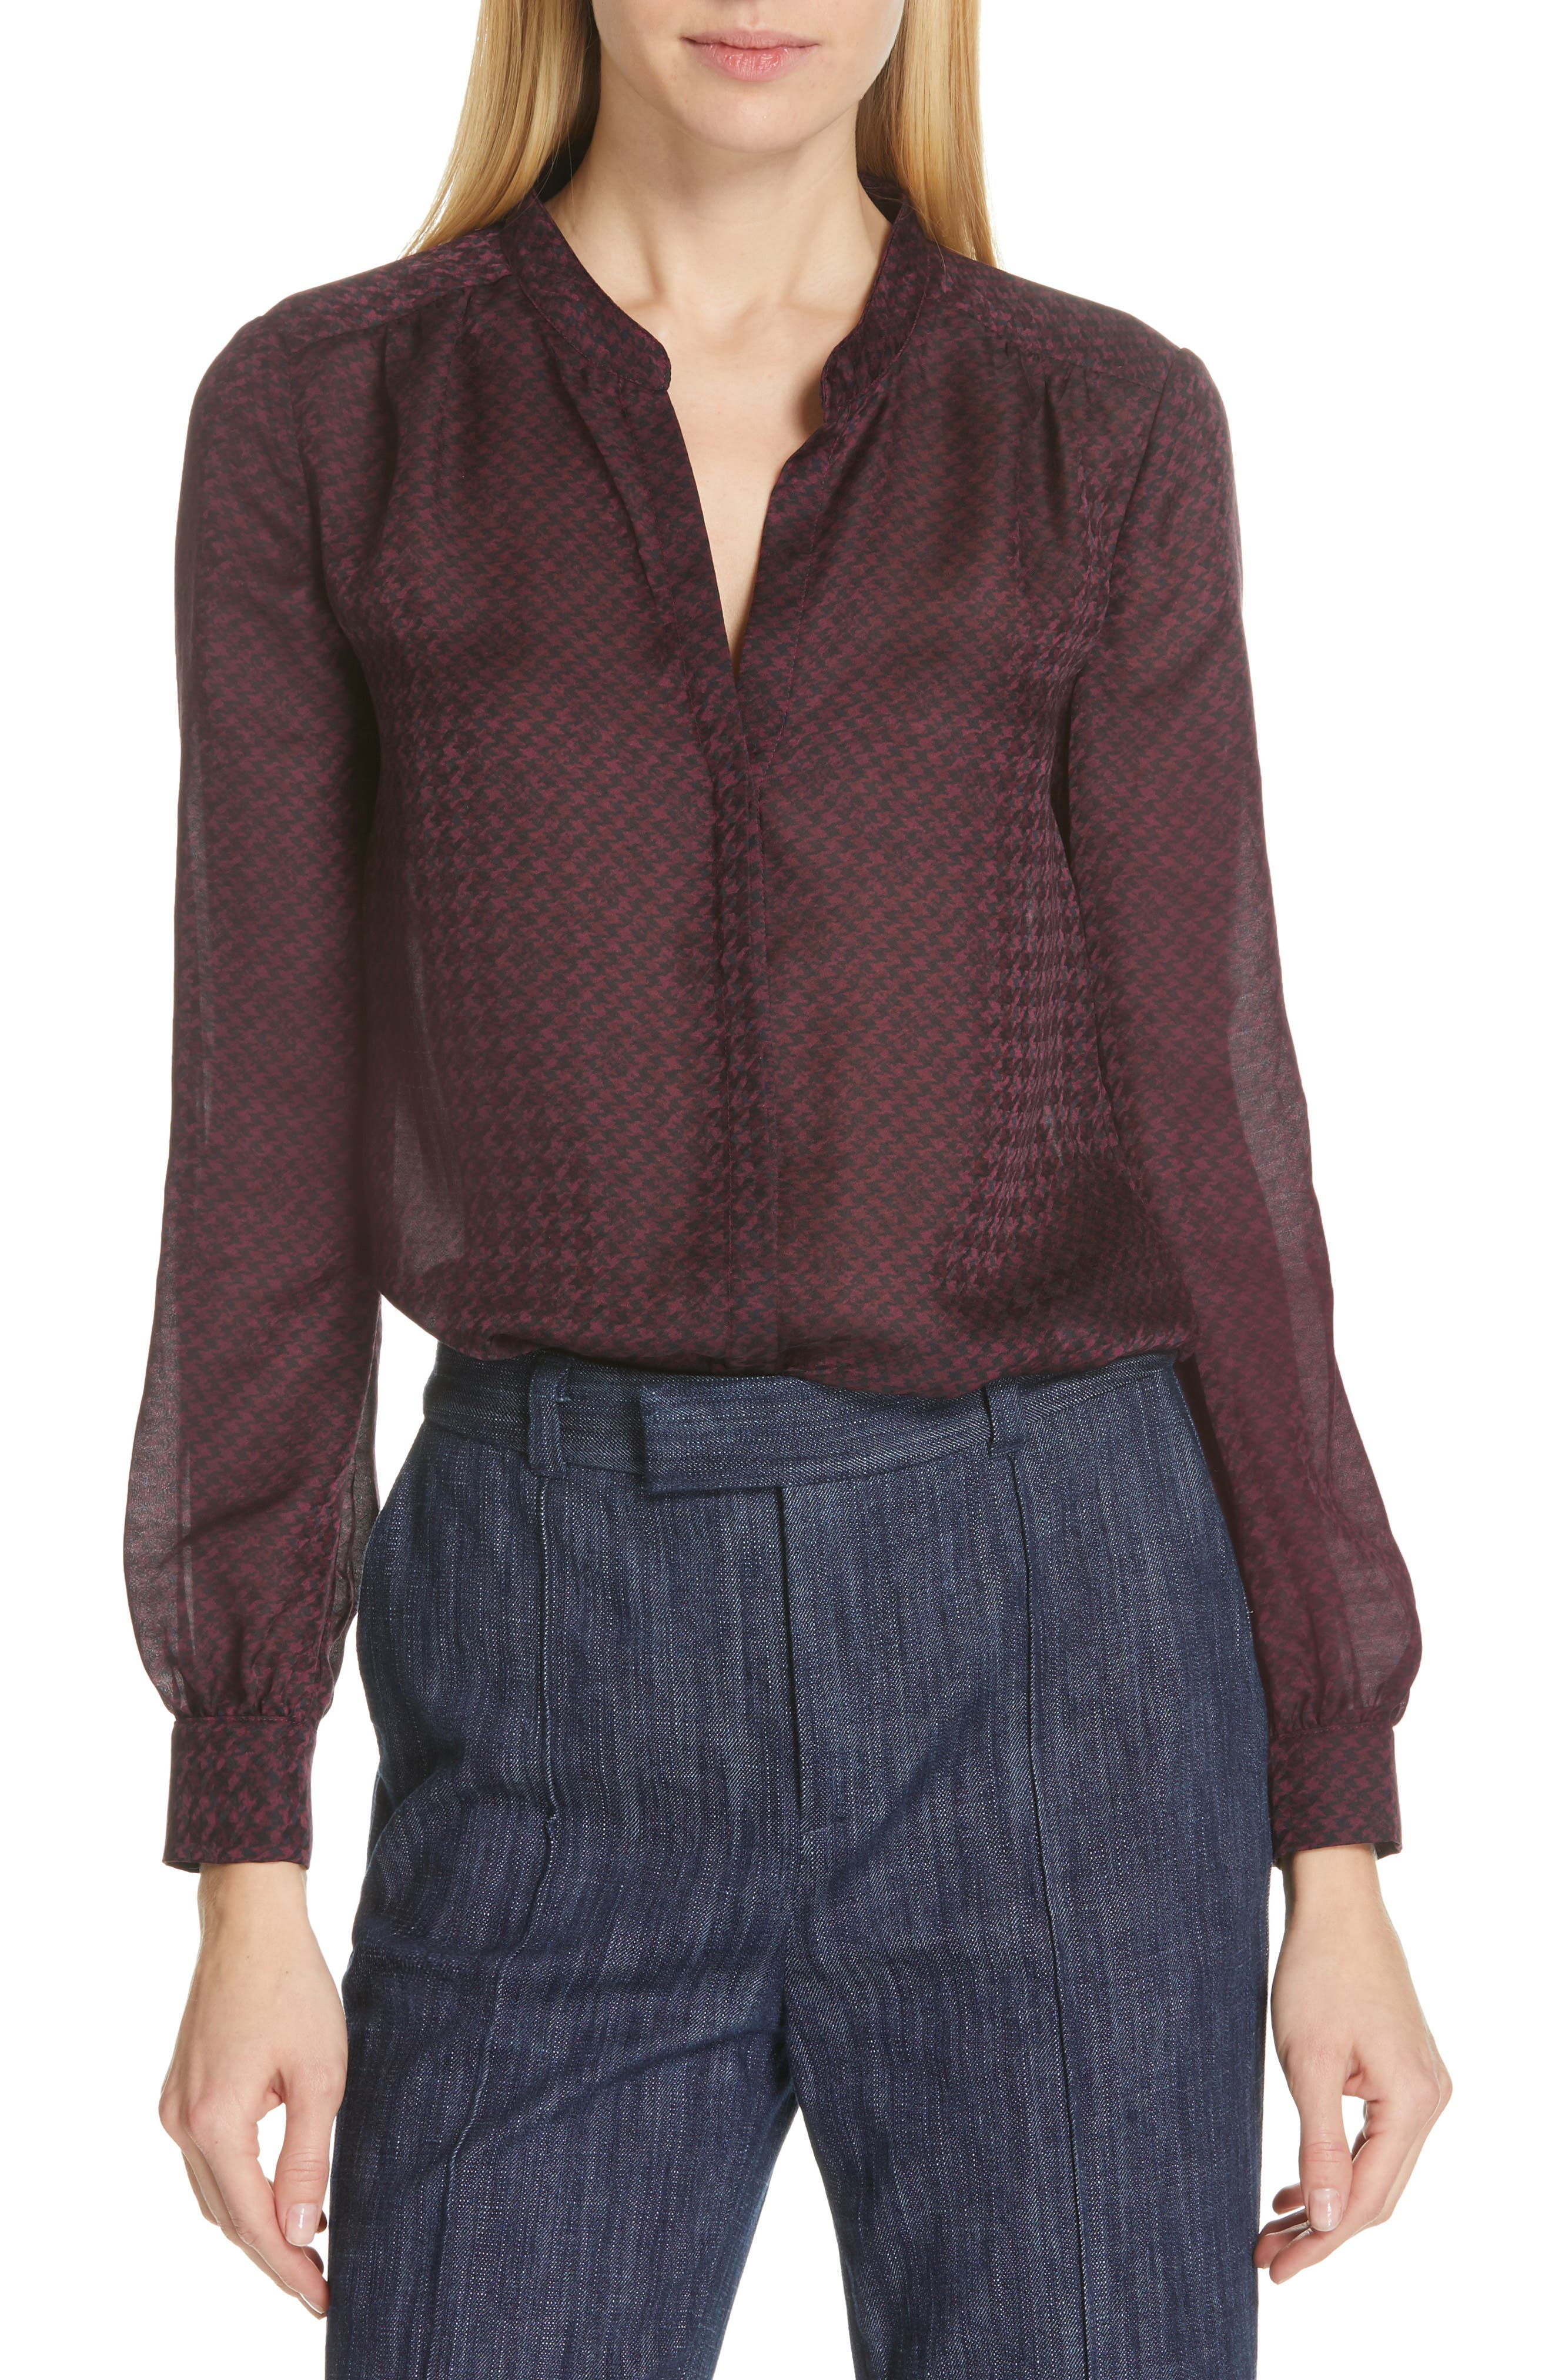 JOIE Mintee Houndstooth Check Blouse, Main, color, 501